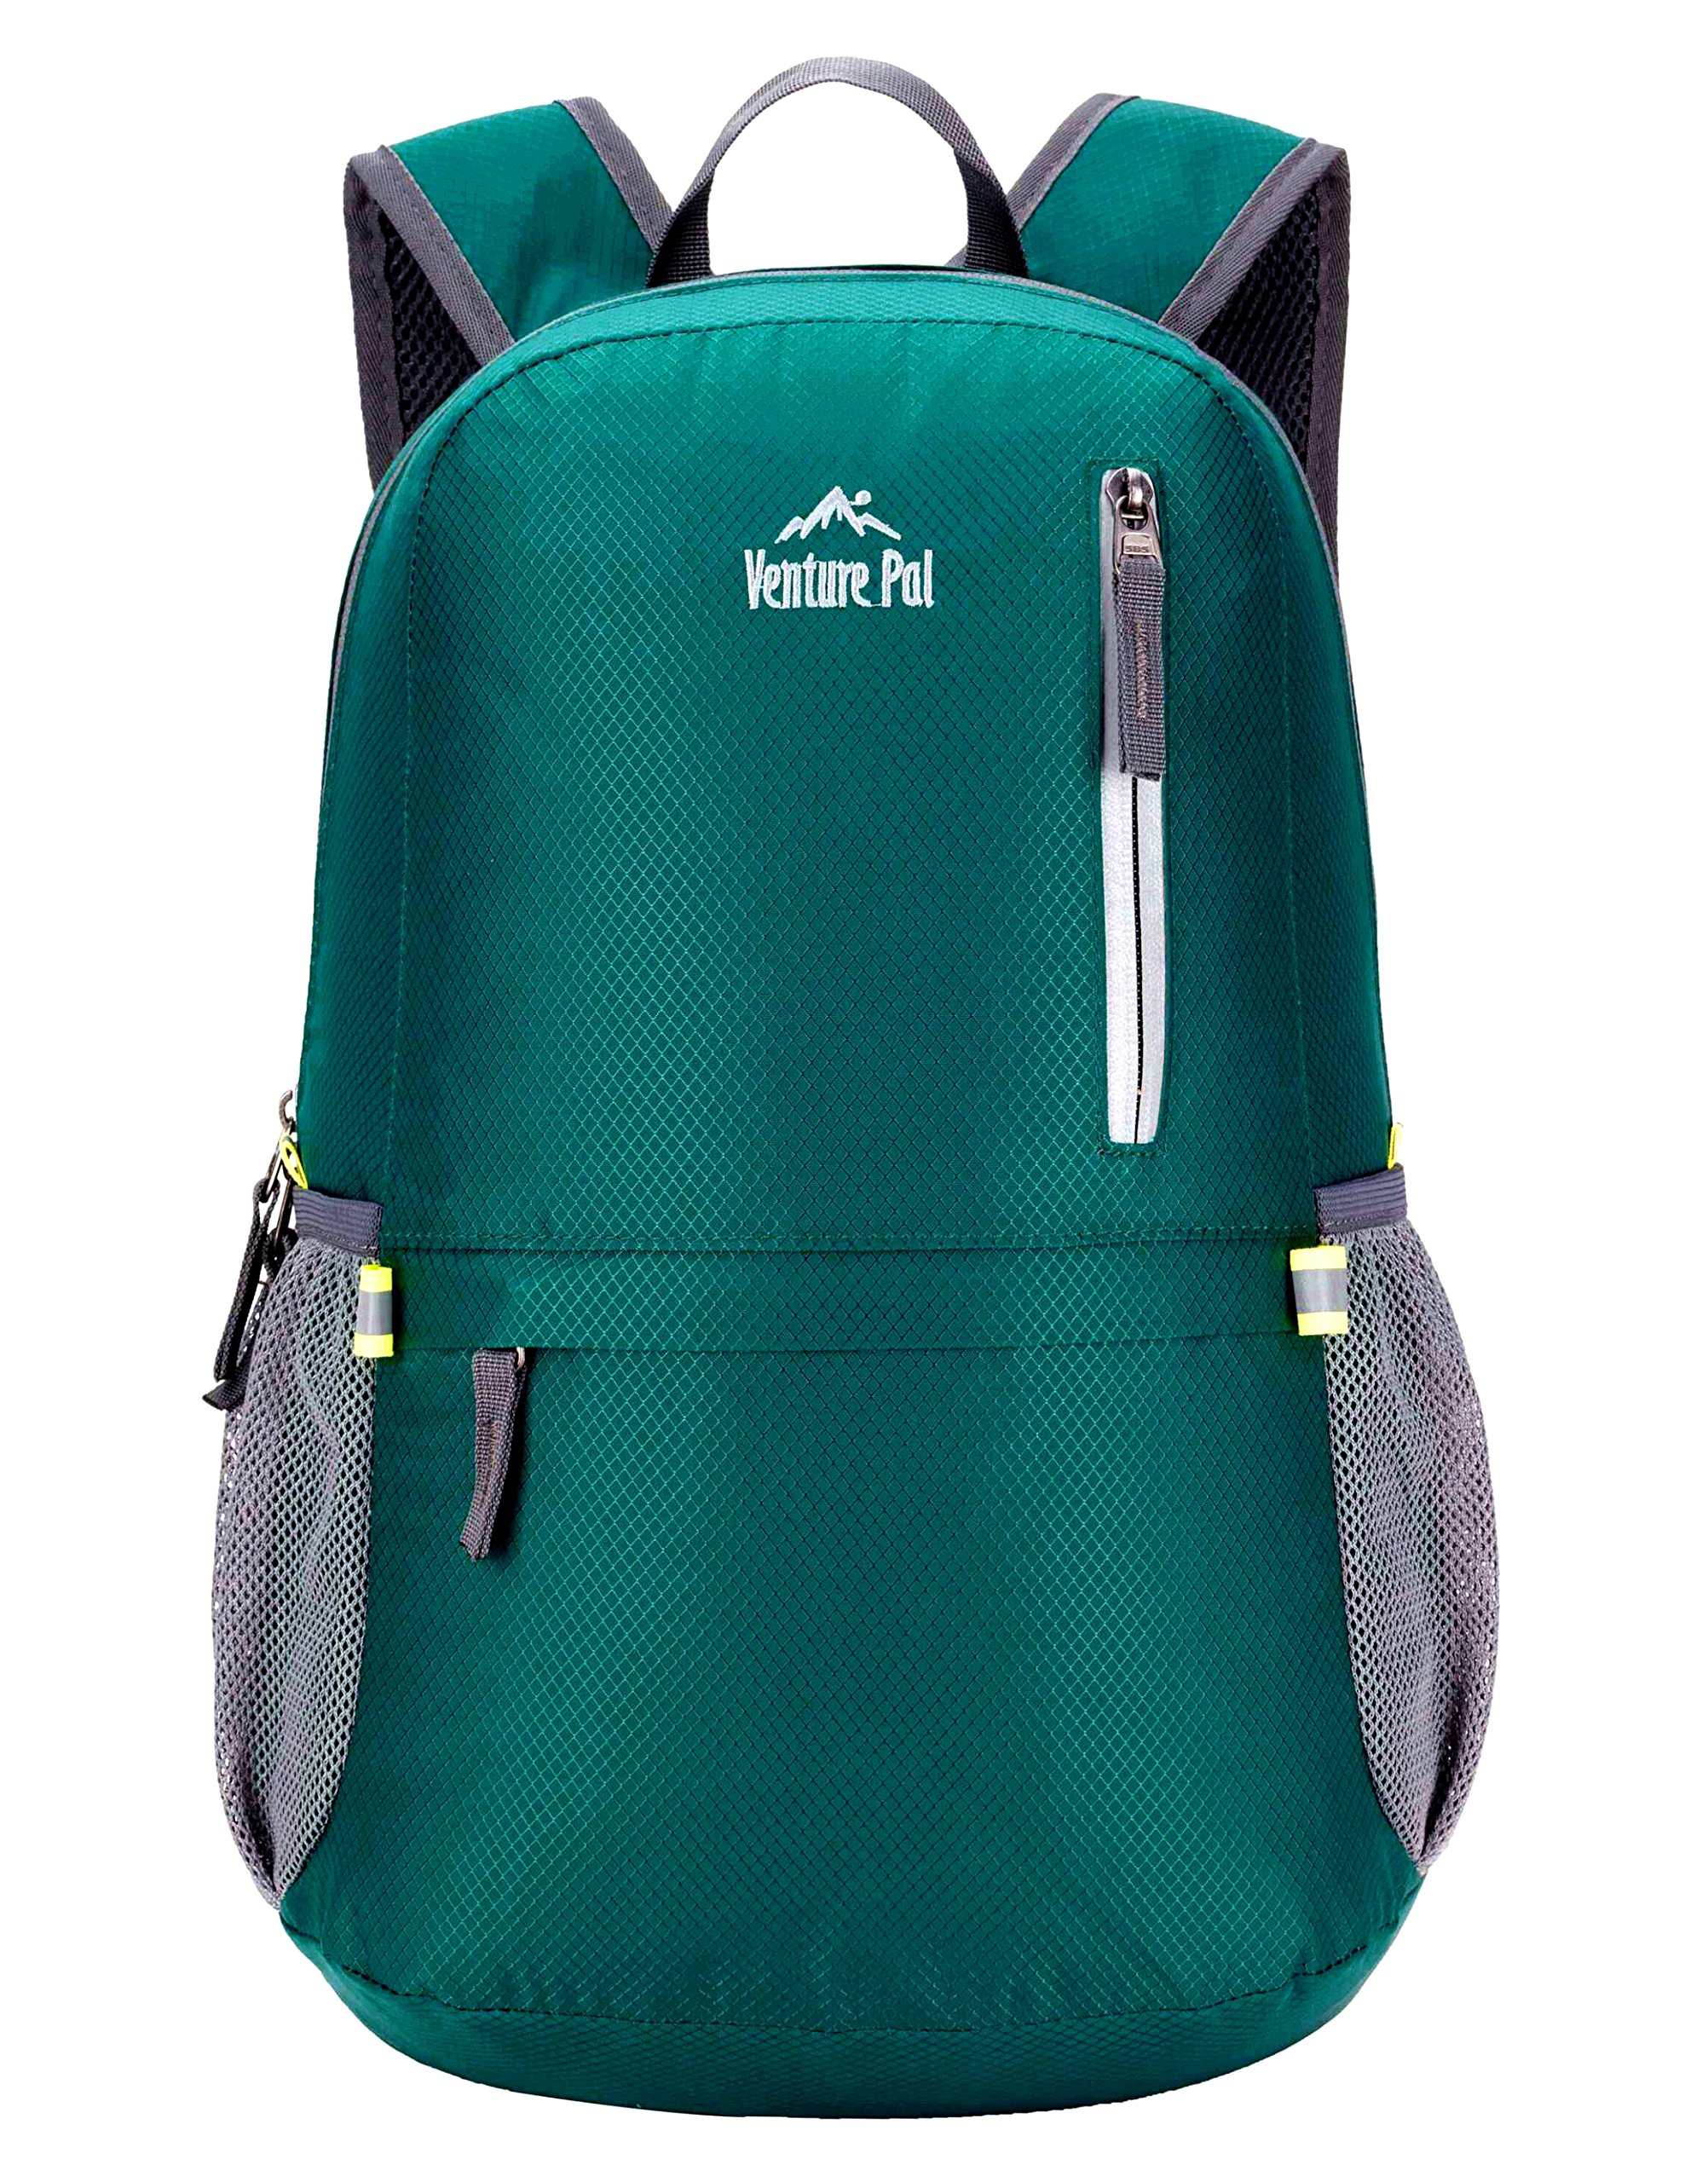 Venture Pal 25L Travel Backpack - Durable Packable Lightweight Small Backpack Women Men (Green) … by Venture Pal (Image #2)